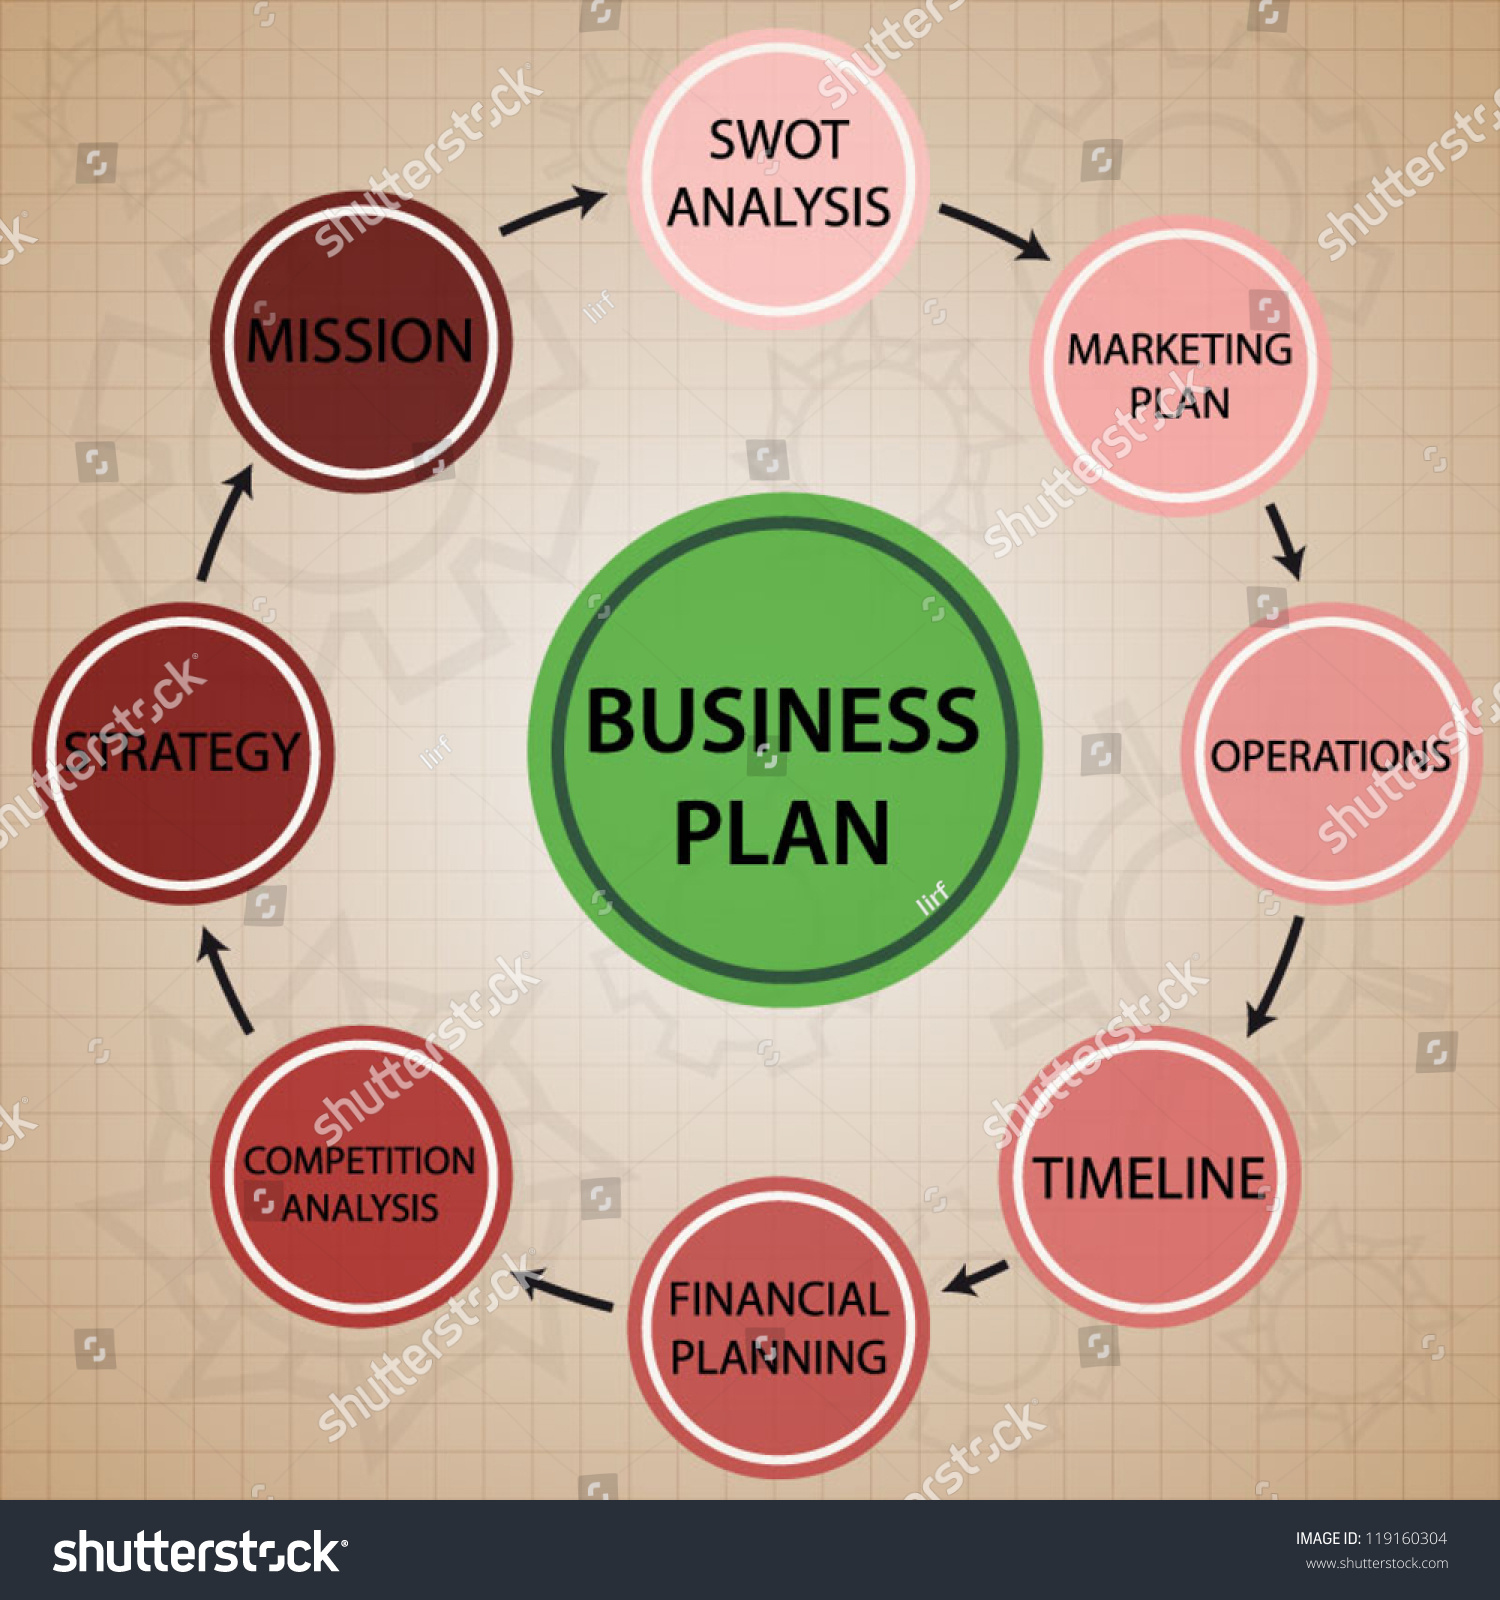 Business plan circle red green color stock vector 119160304 business plan circle red and green color chart nvjuhfo Image collections